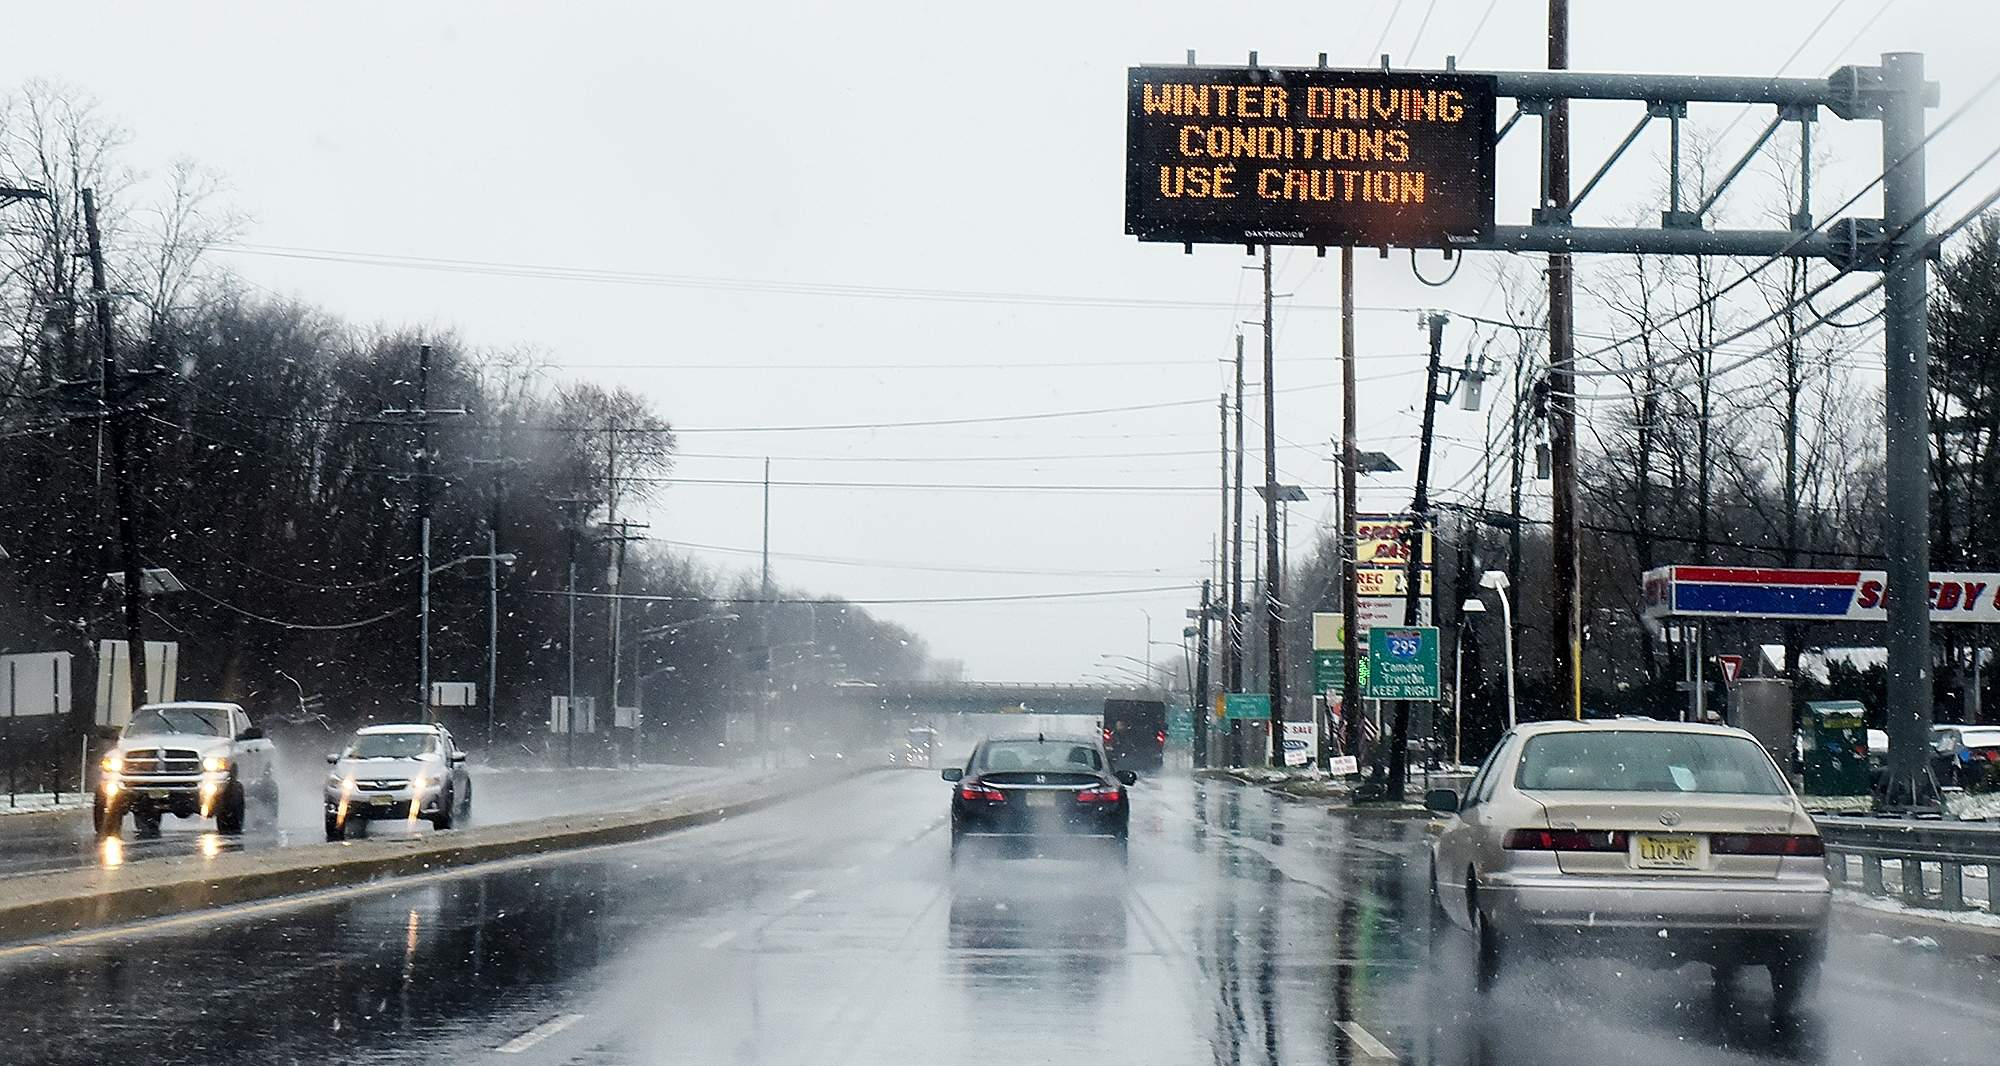 Along Route 541 heading into Westampton, on Wednesday, March 7, 2018, winter driving conditions alert signs were posted for motorists. [NANCY ROKOS / STAFF PHOTOJOURNALIST]